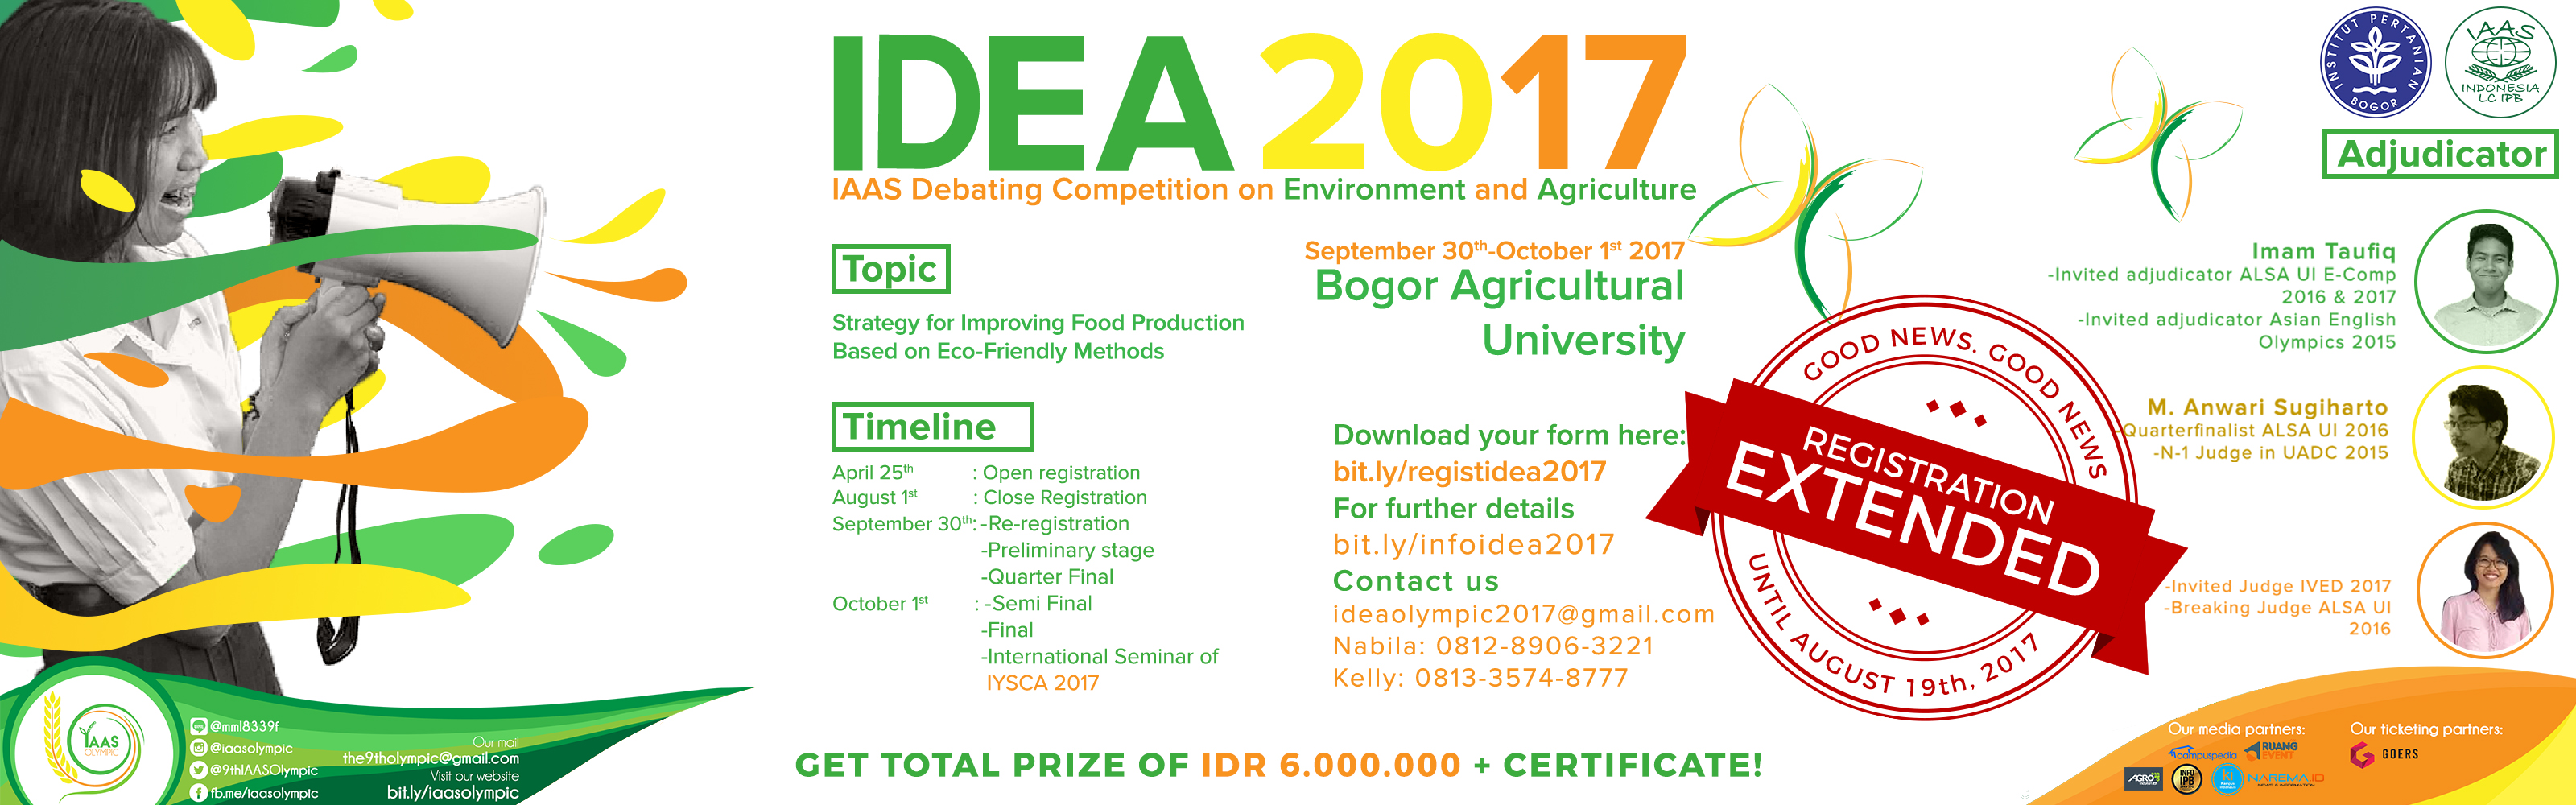 IAAS Debating Competition on Environment and Agriculture (IDEA) 2017